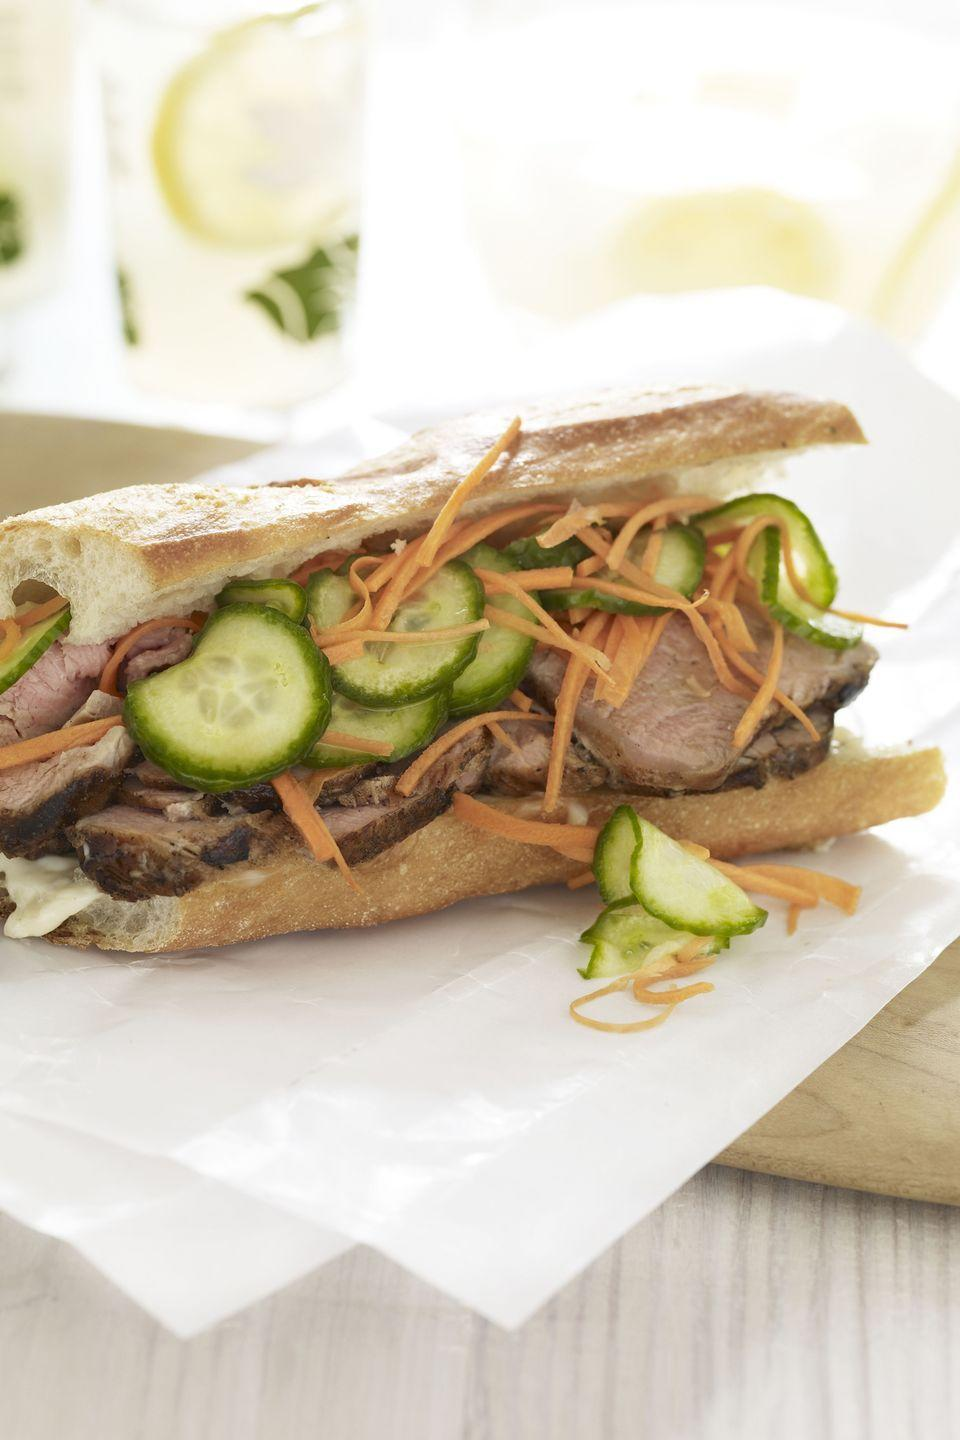 """<p>Sweet and savory pork? Pickled veggies? Get inspired by the bold flavors found in a <em>bánh mì</em>, the Vietnamese street-stall sub. You won't regret it. </p><p><a href=""""https://www.goodhousekeeping.com/food-recipes/a10311/lemongrass-pork-sandwich-recipe-ghk0810/"""" rel=""""nofollow noopener"""" target=""""_blank"""" data-ylk=""""slk:Get the recipe for Lemongrass Pork Sandwich »"""" class=""""link rapid-noclick-resp""""><em>Get the recipe for Lemongrass Pork Sandwich »</em></a></p>"""